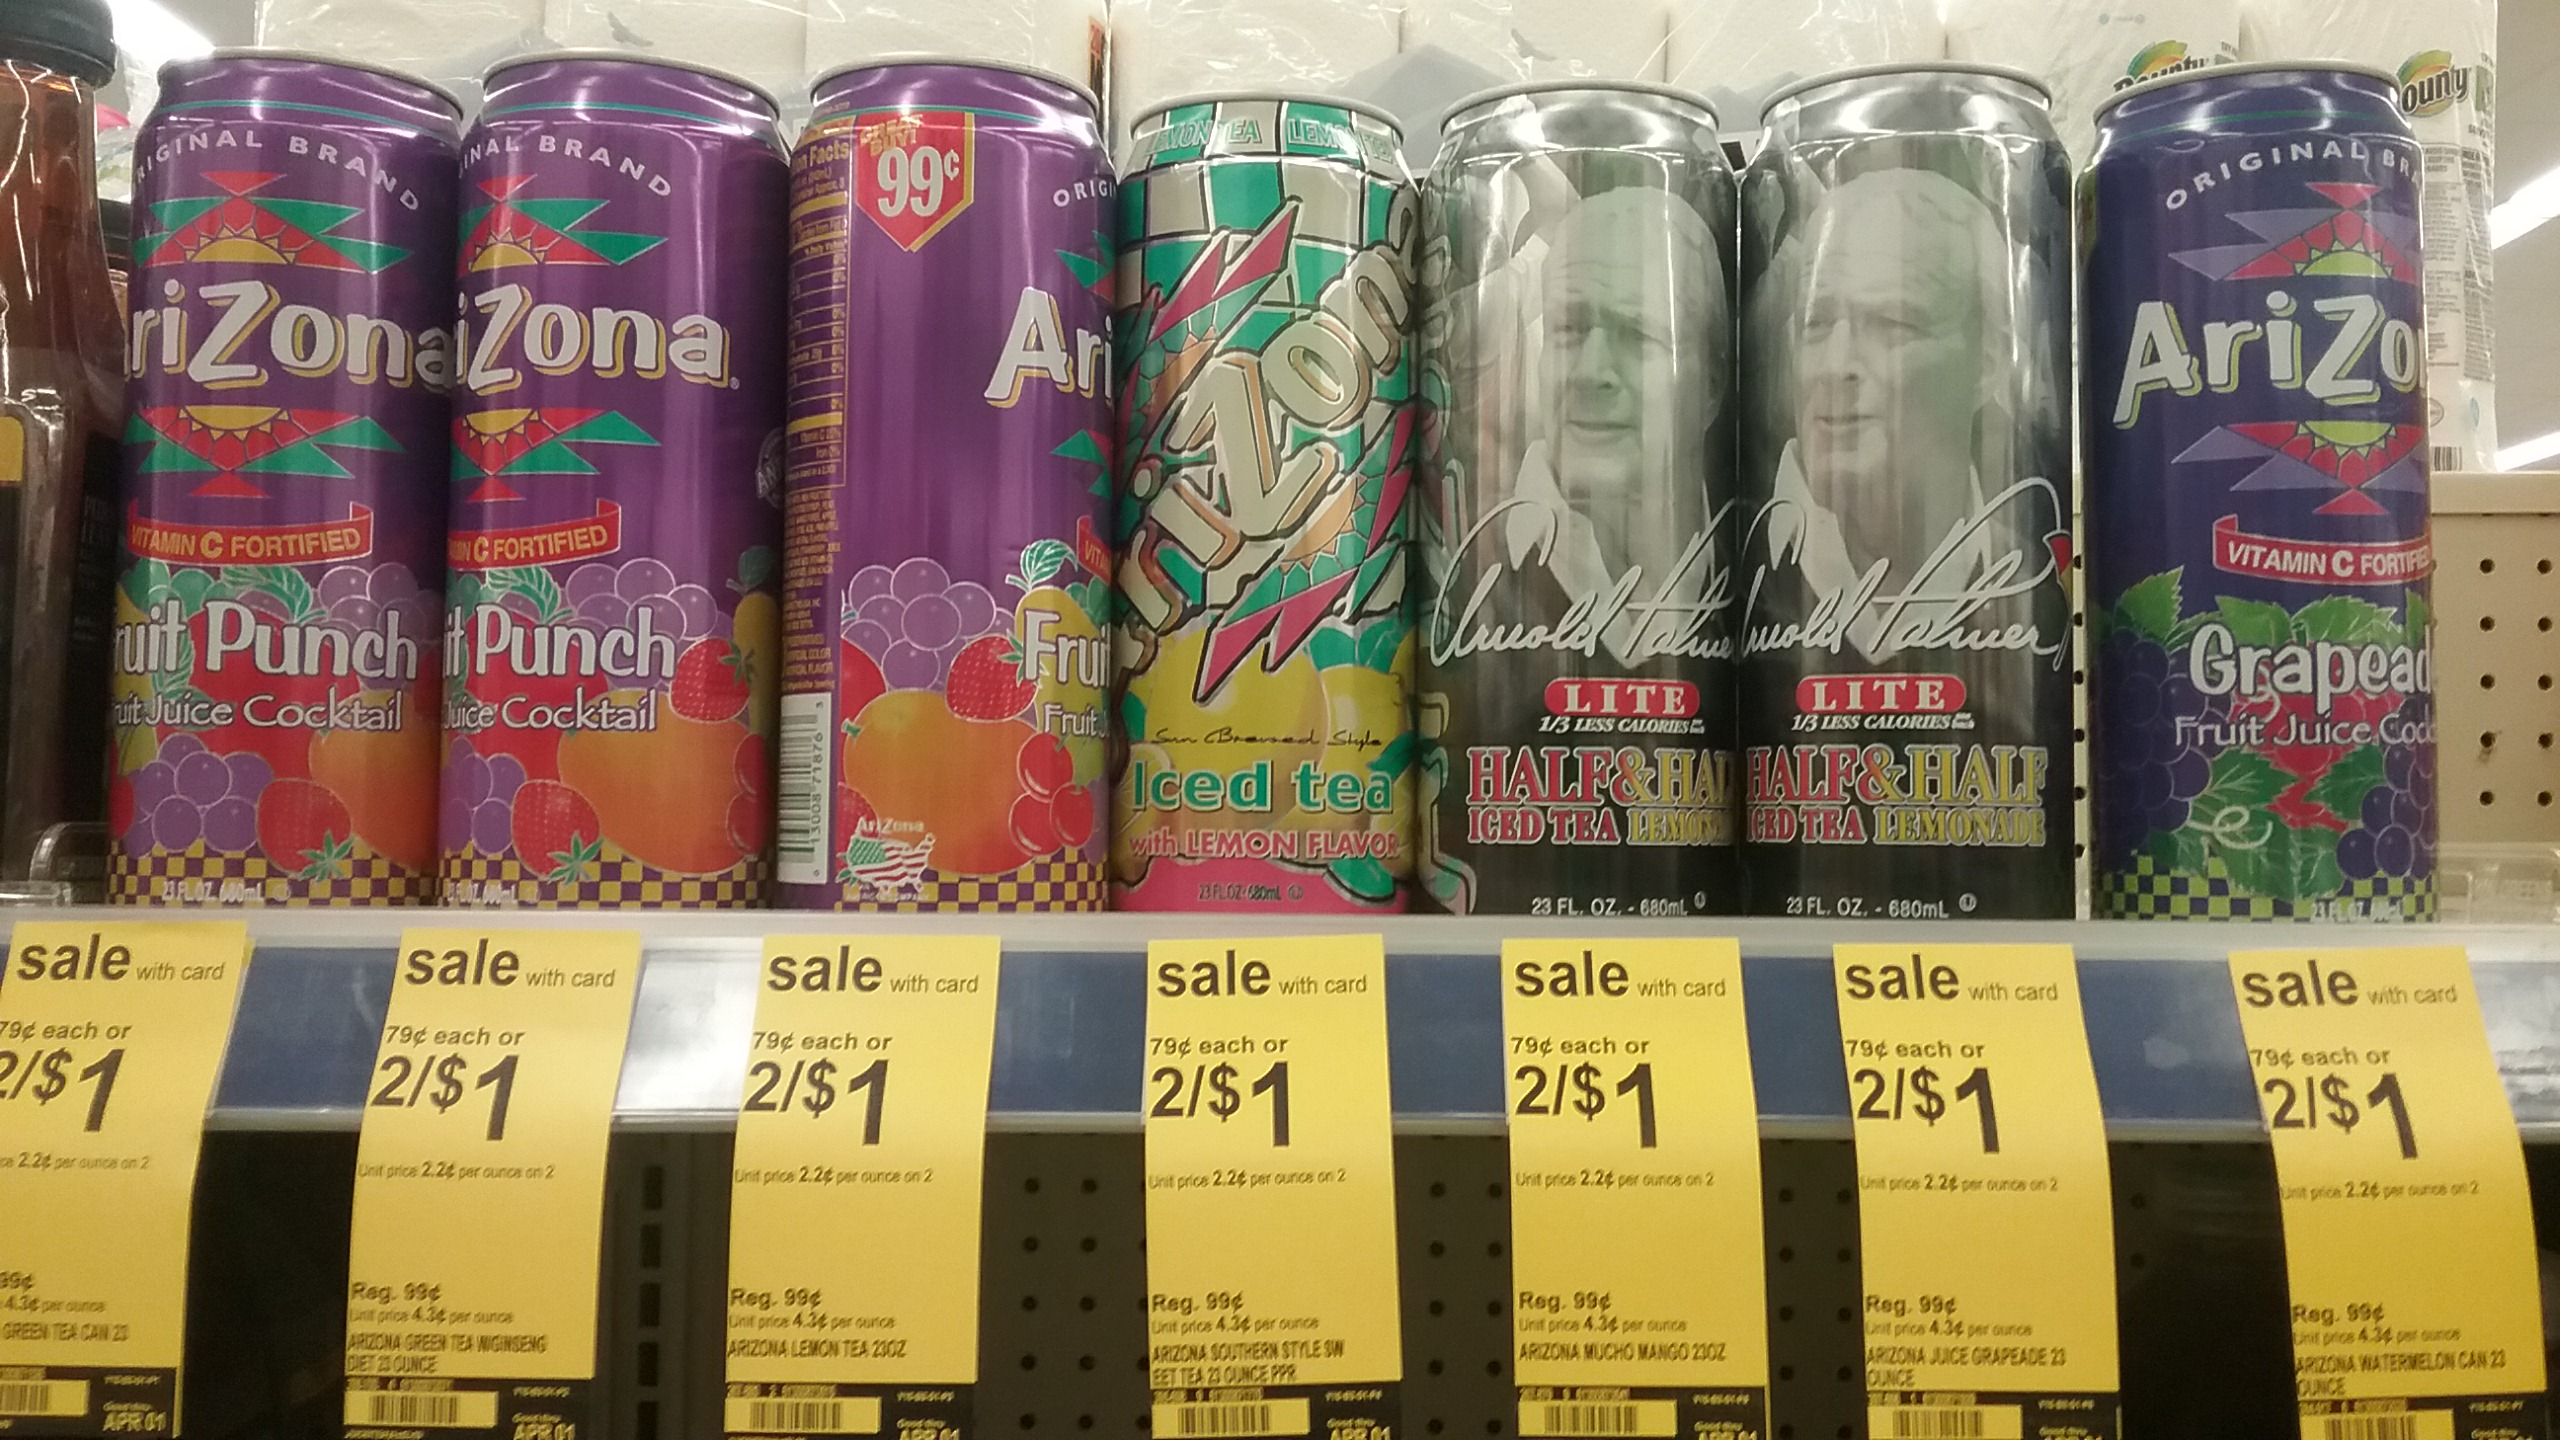 Arizona Iced Tea at Walgreens